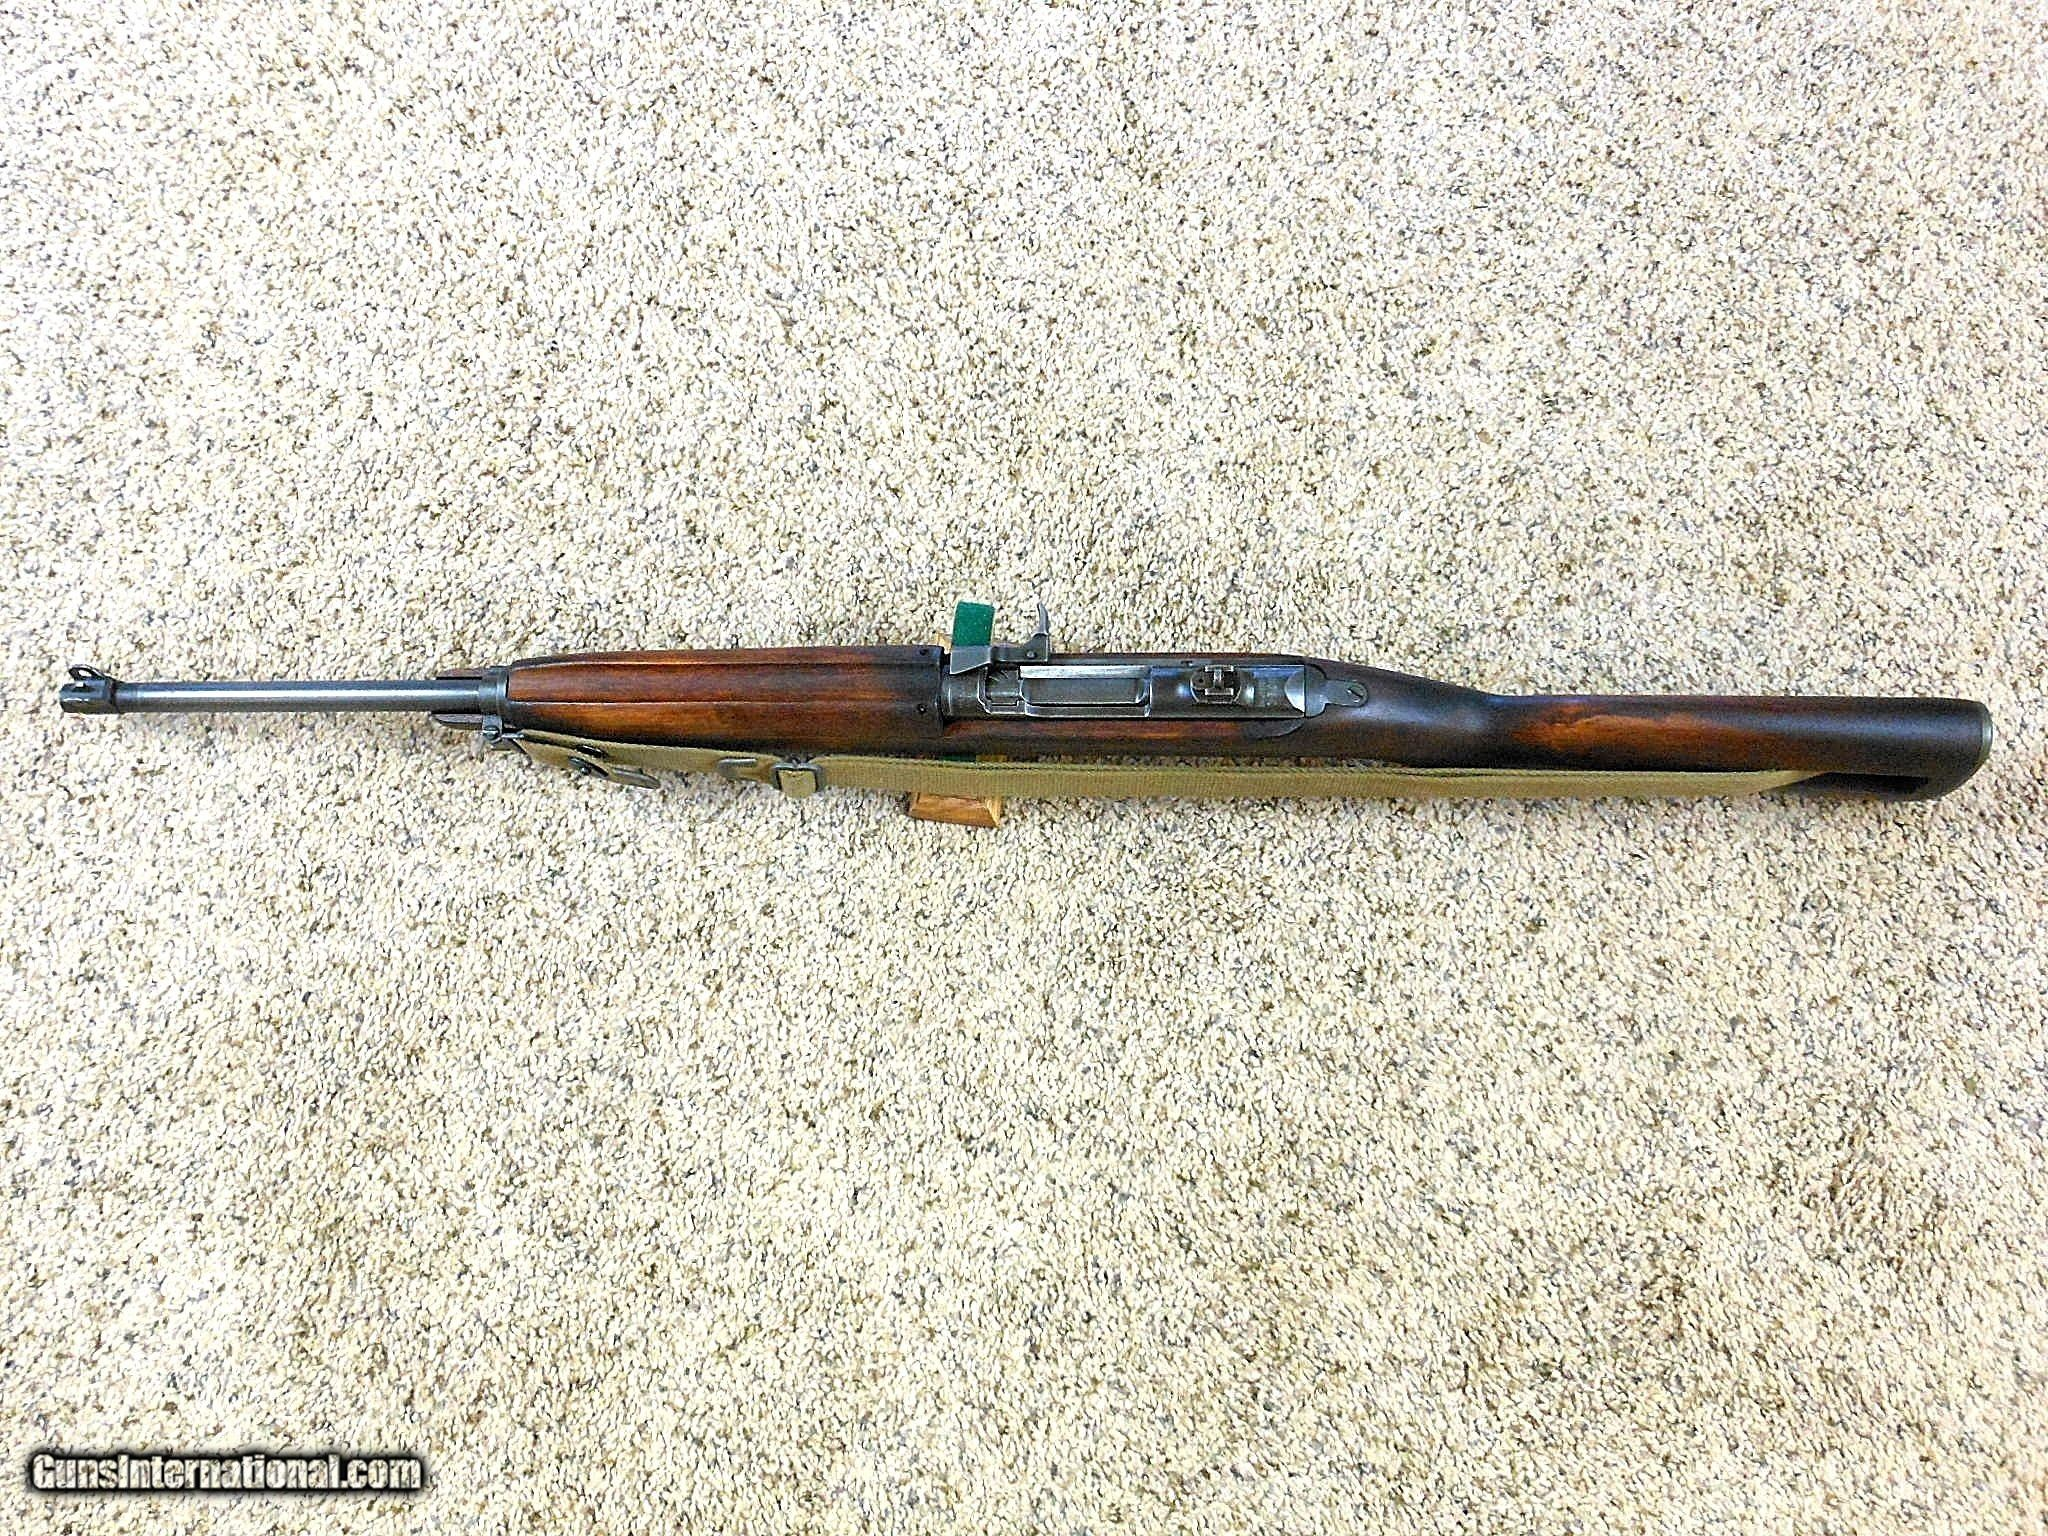 Dating an m1 carbine